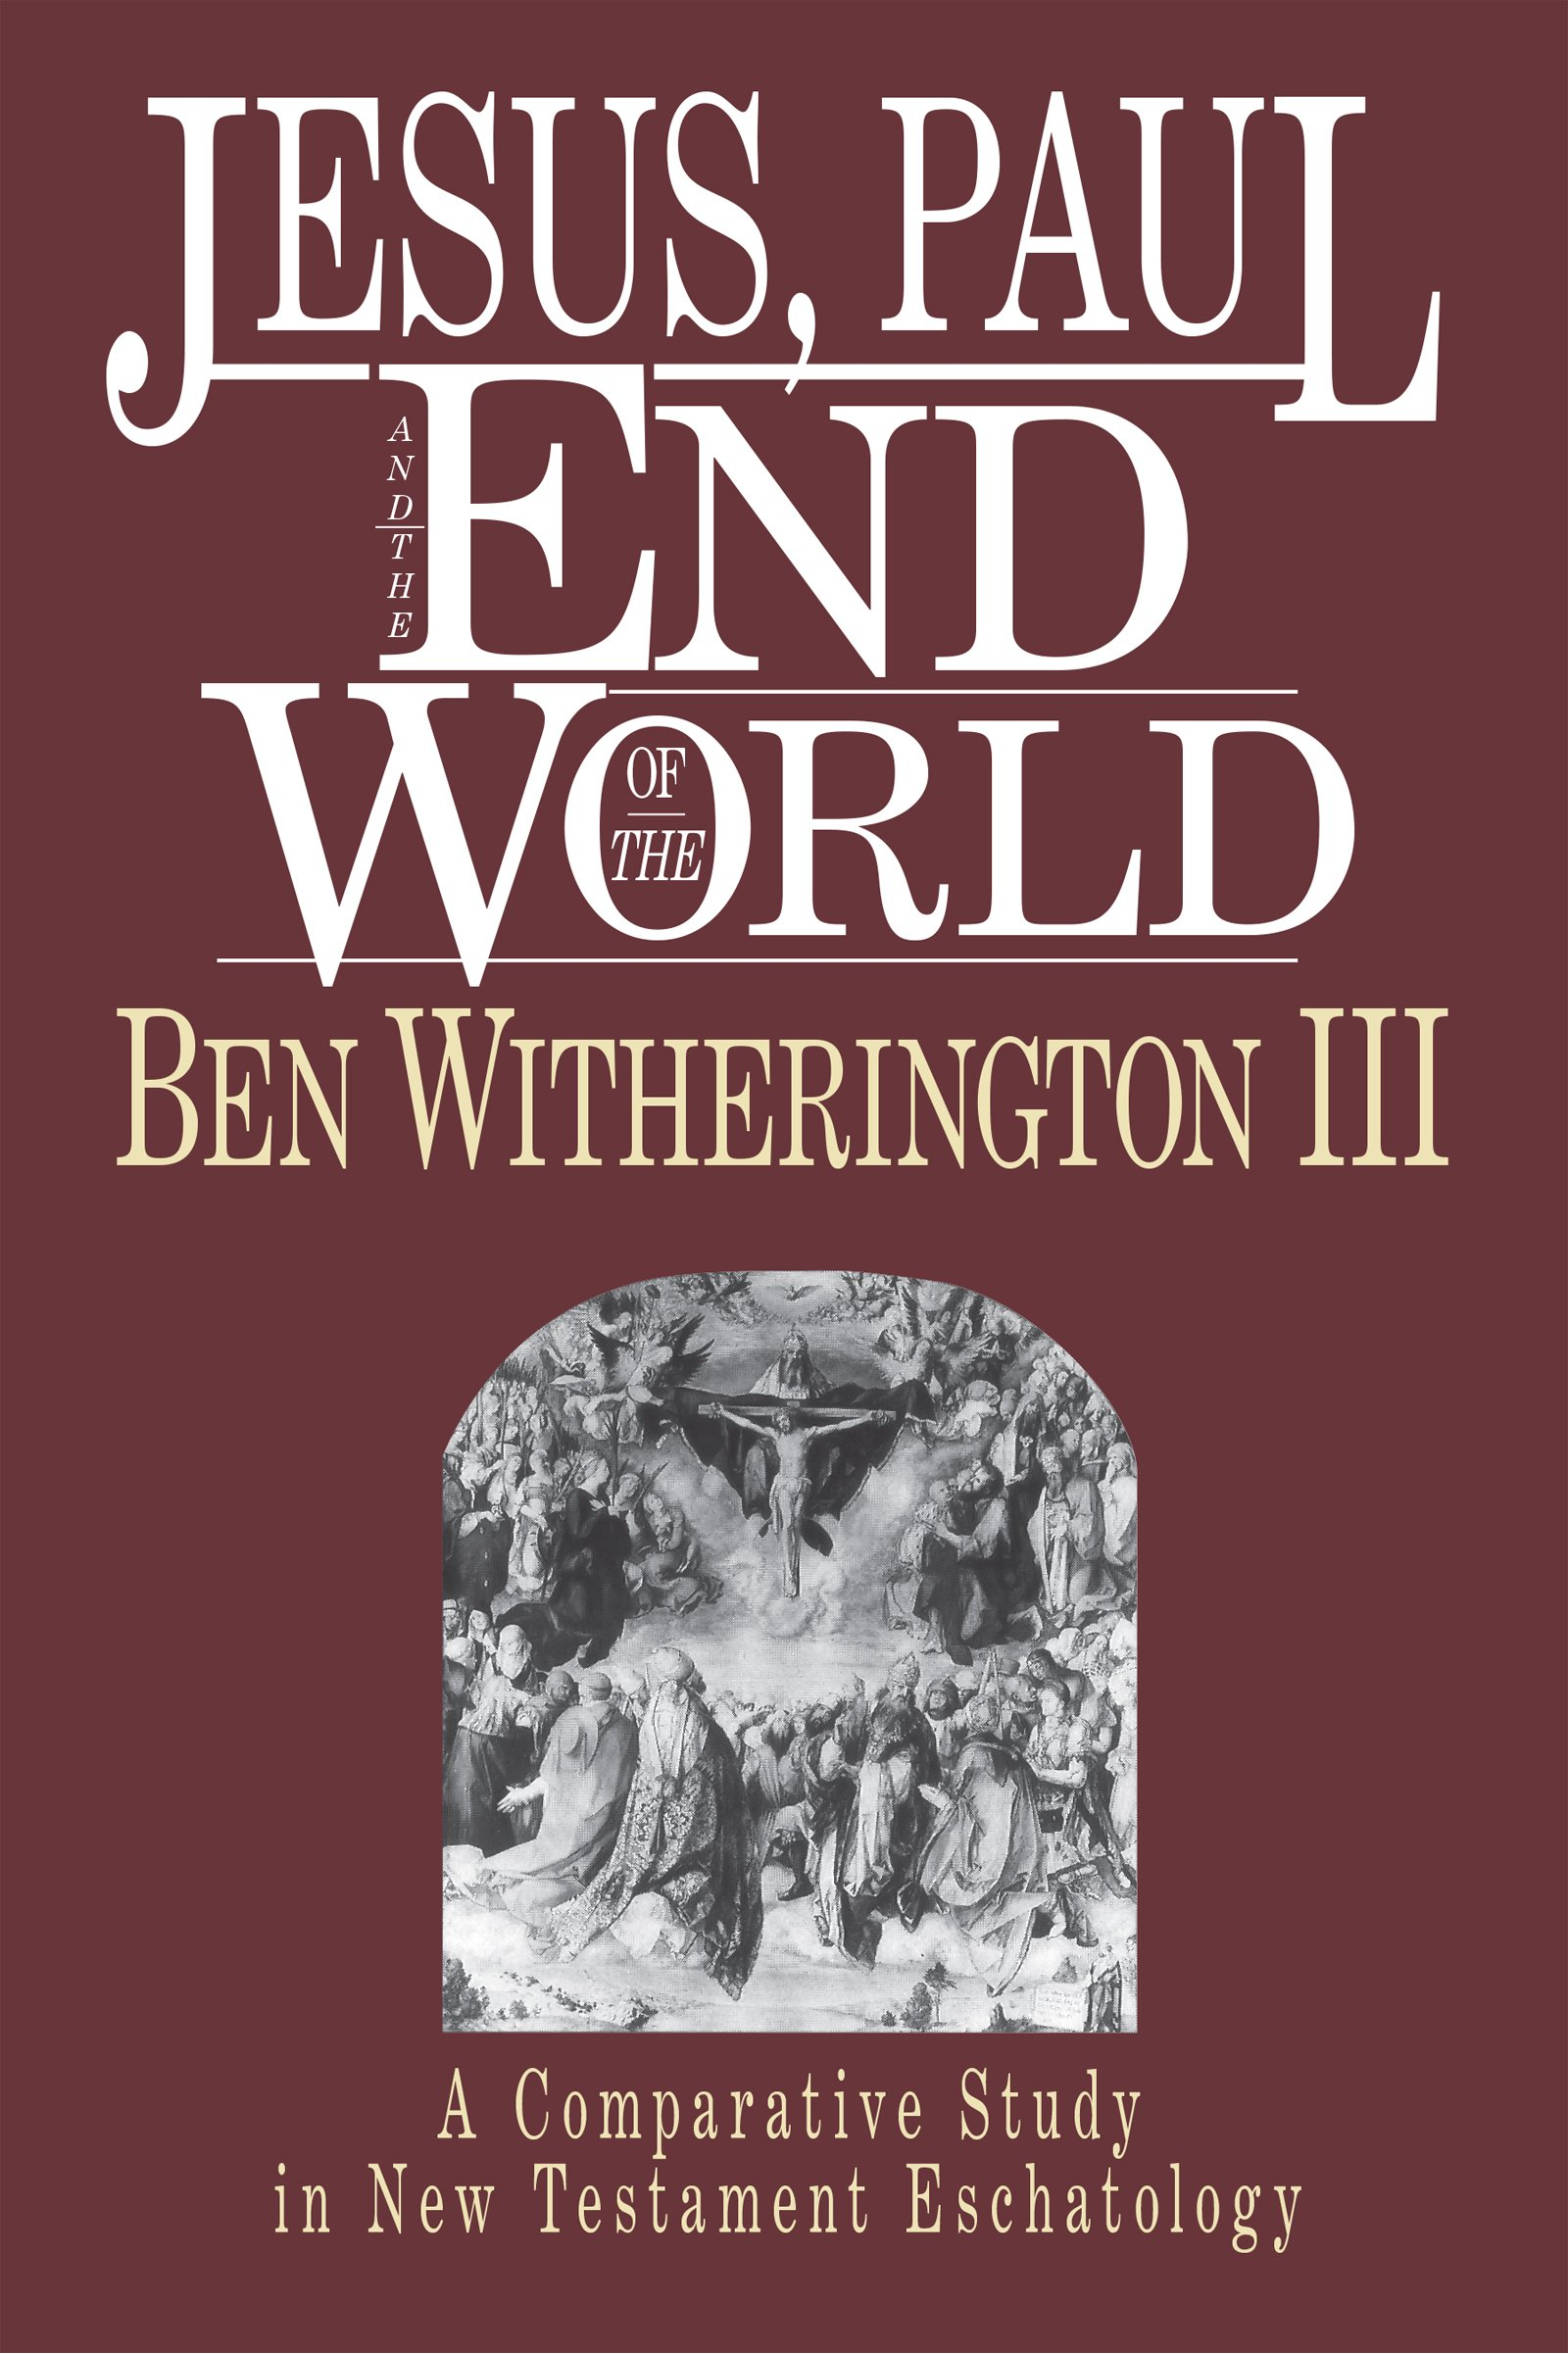 Jesus paul and the end of the world ben witherington iii jesus paul and the end of the world ben witherington iii 9780830817597 amazon books fandeluxe Gallery